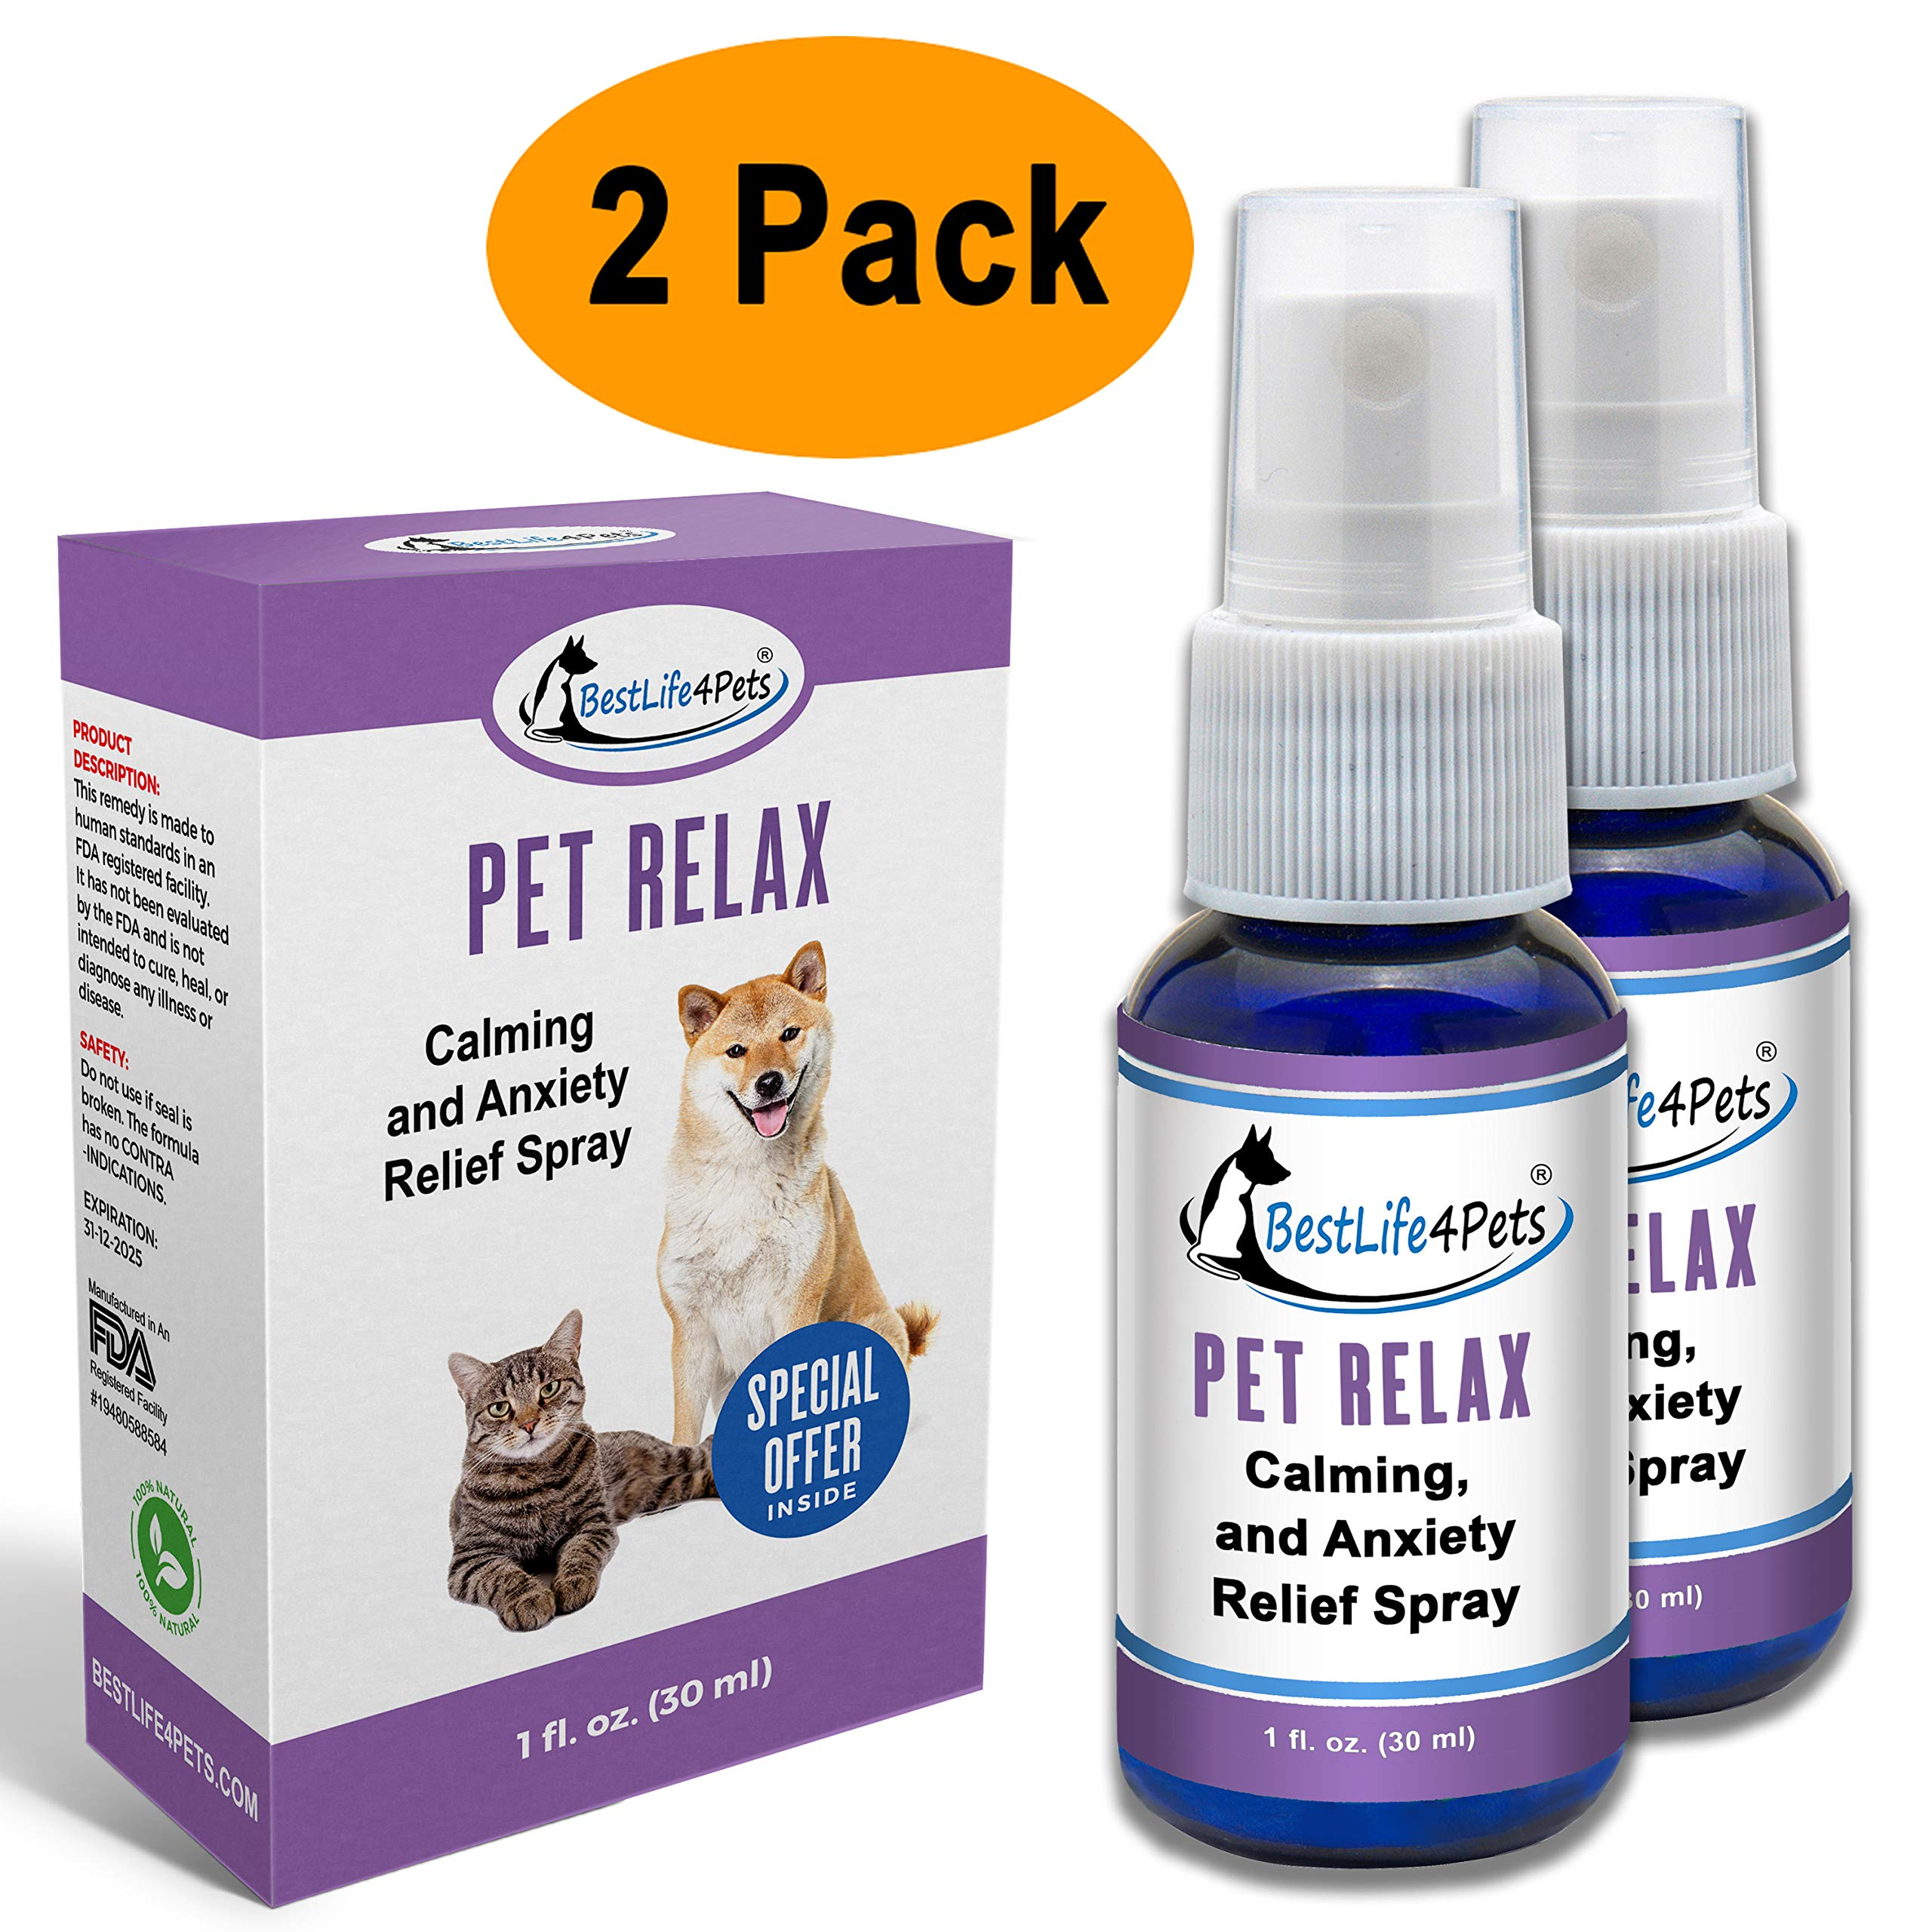 BestLife4Pets Calming Anxiety Relief for Dogs and Cats; All Natural Pet Stress Aid Eases Your Dogs and Cats Separation Anxiety, Calms Their Fears and Reduces Agression - 2 Pack by BestLife4Pets